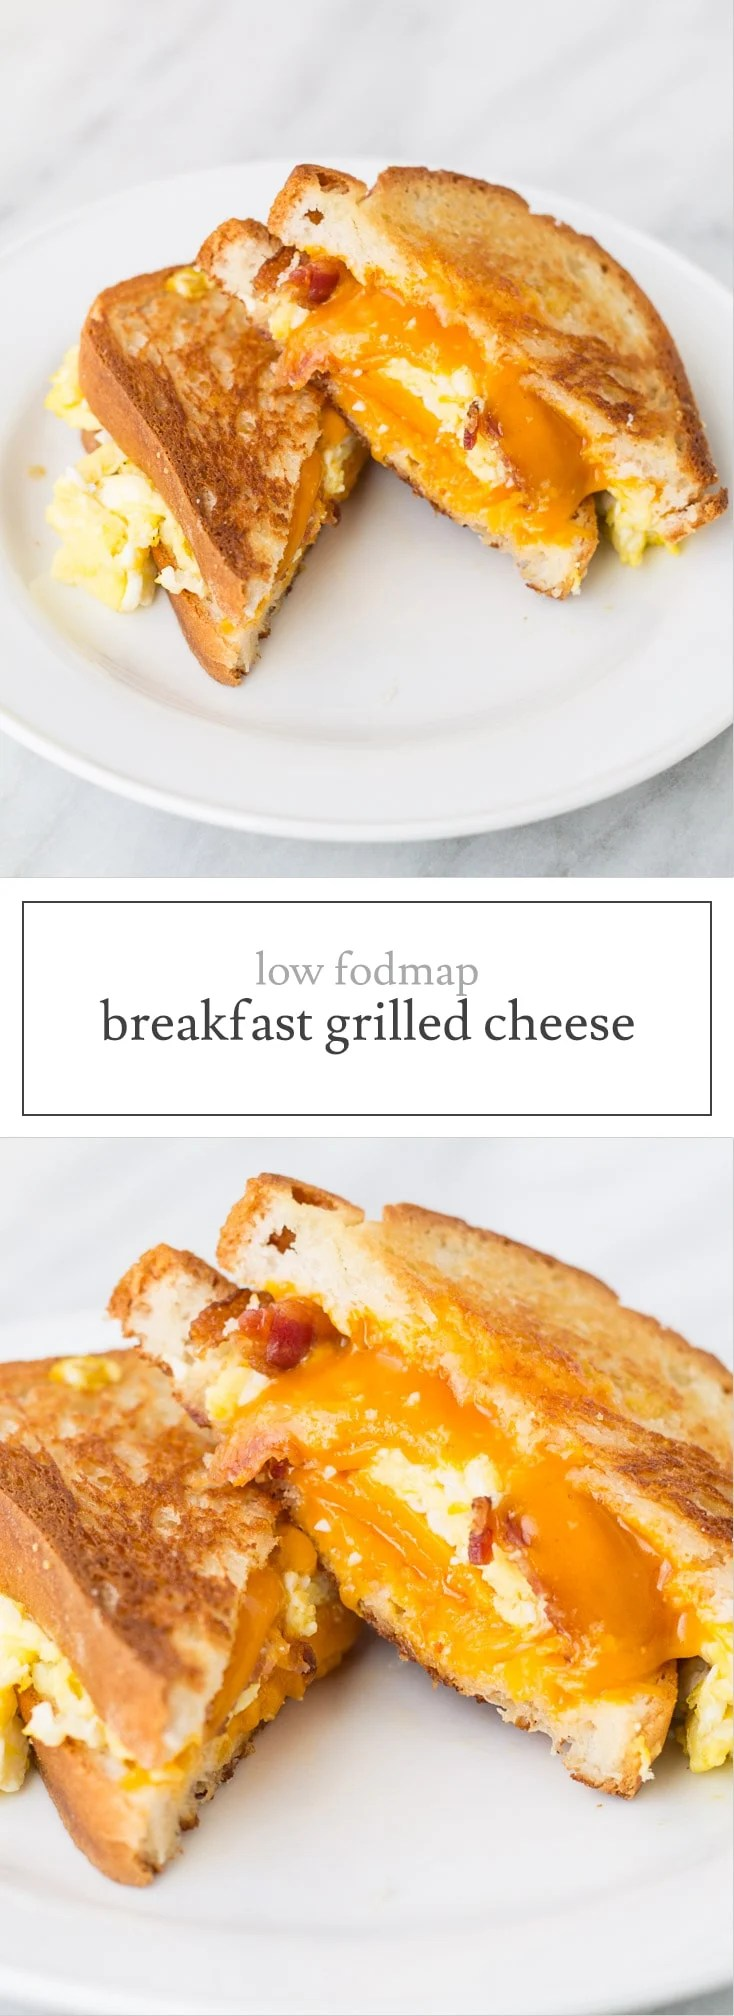 Breakfast sandwich meets grilled cheese in this quick and yummy Low FODMAP Breakfast Grilled Cheese recipe. It's also gluten free!